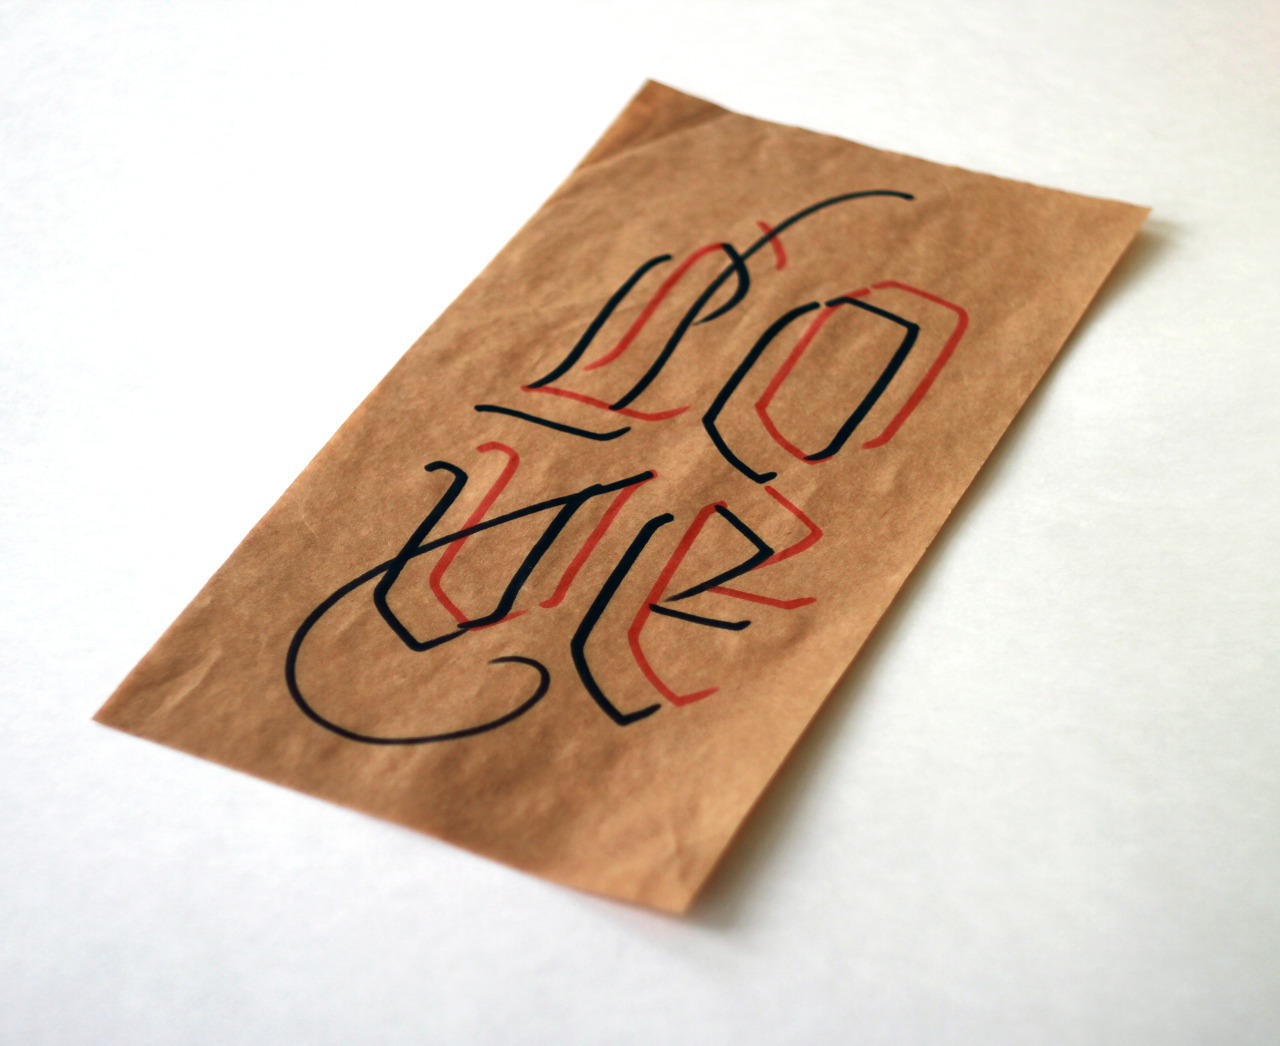 Calligraphi.ca - Love - Red and black point markers - Misha Karagezyan